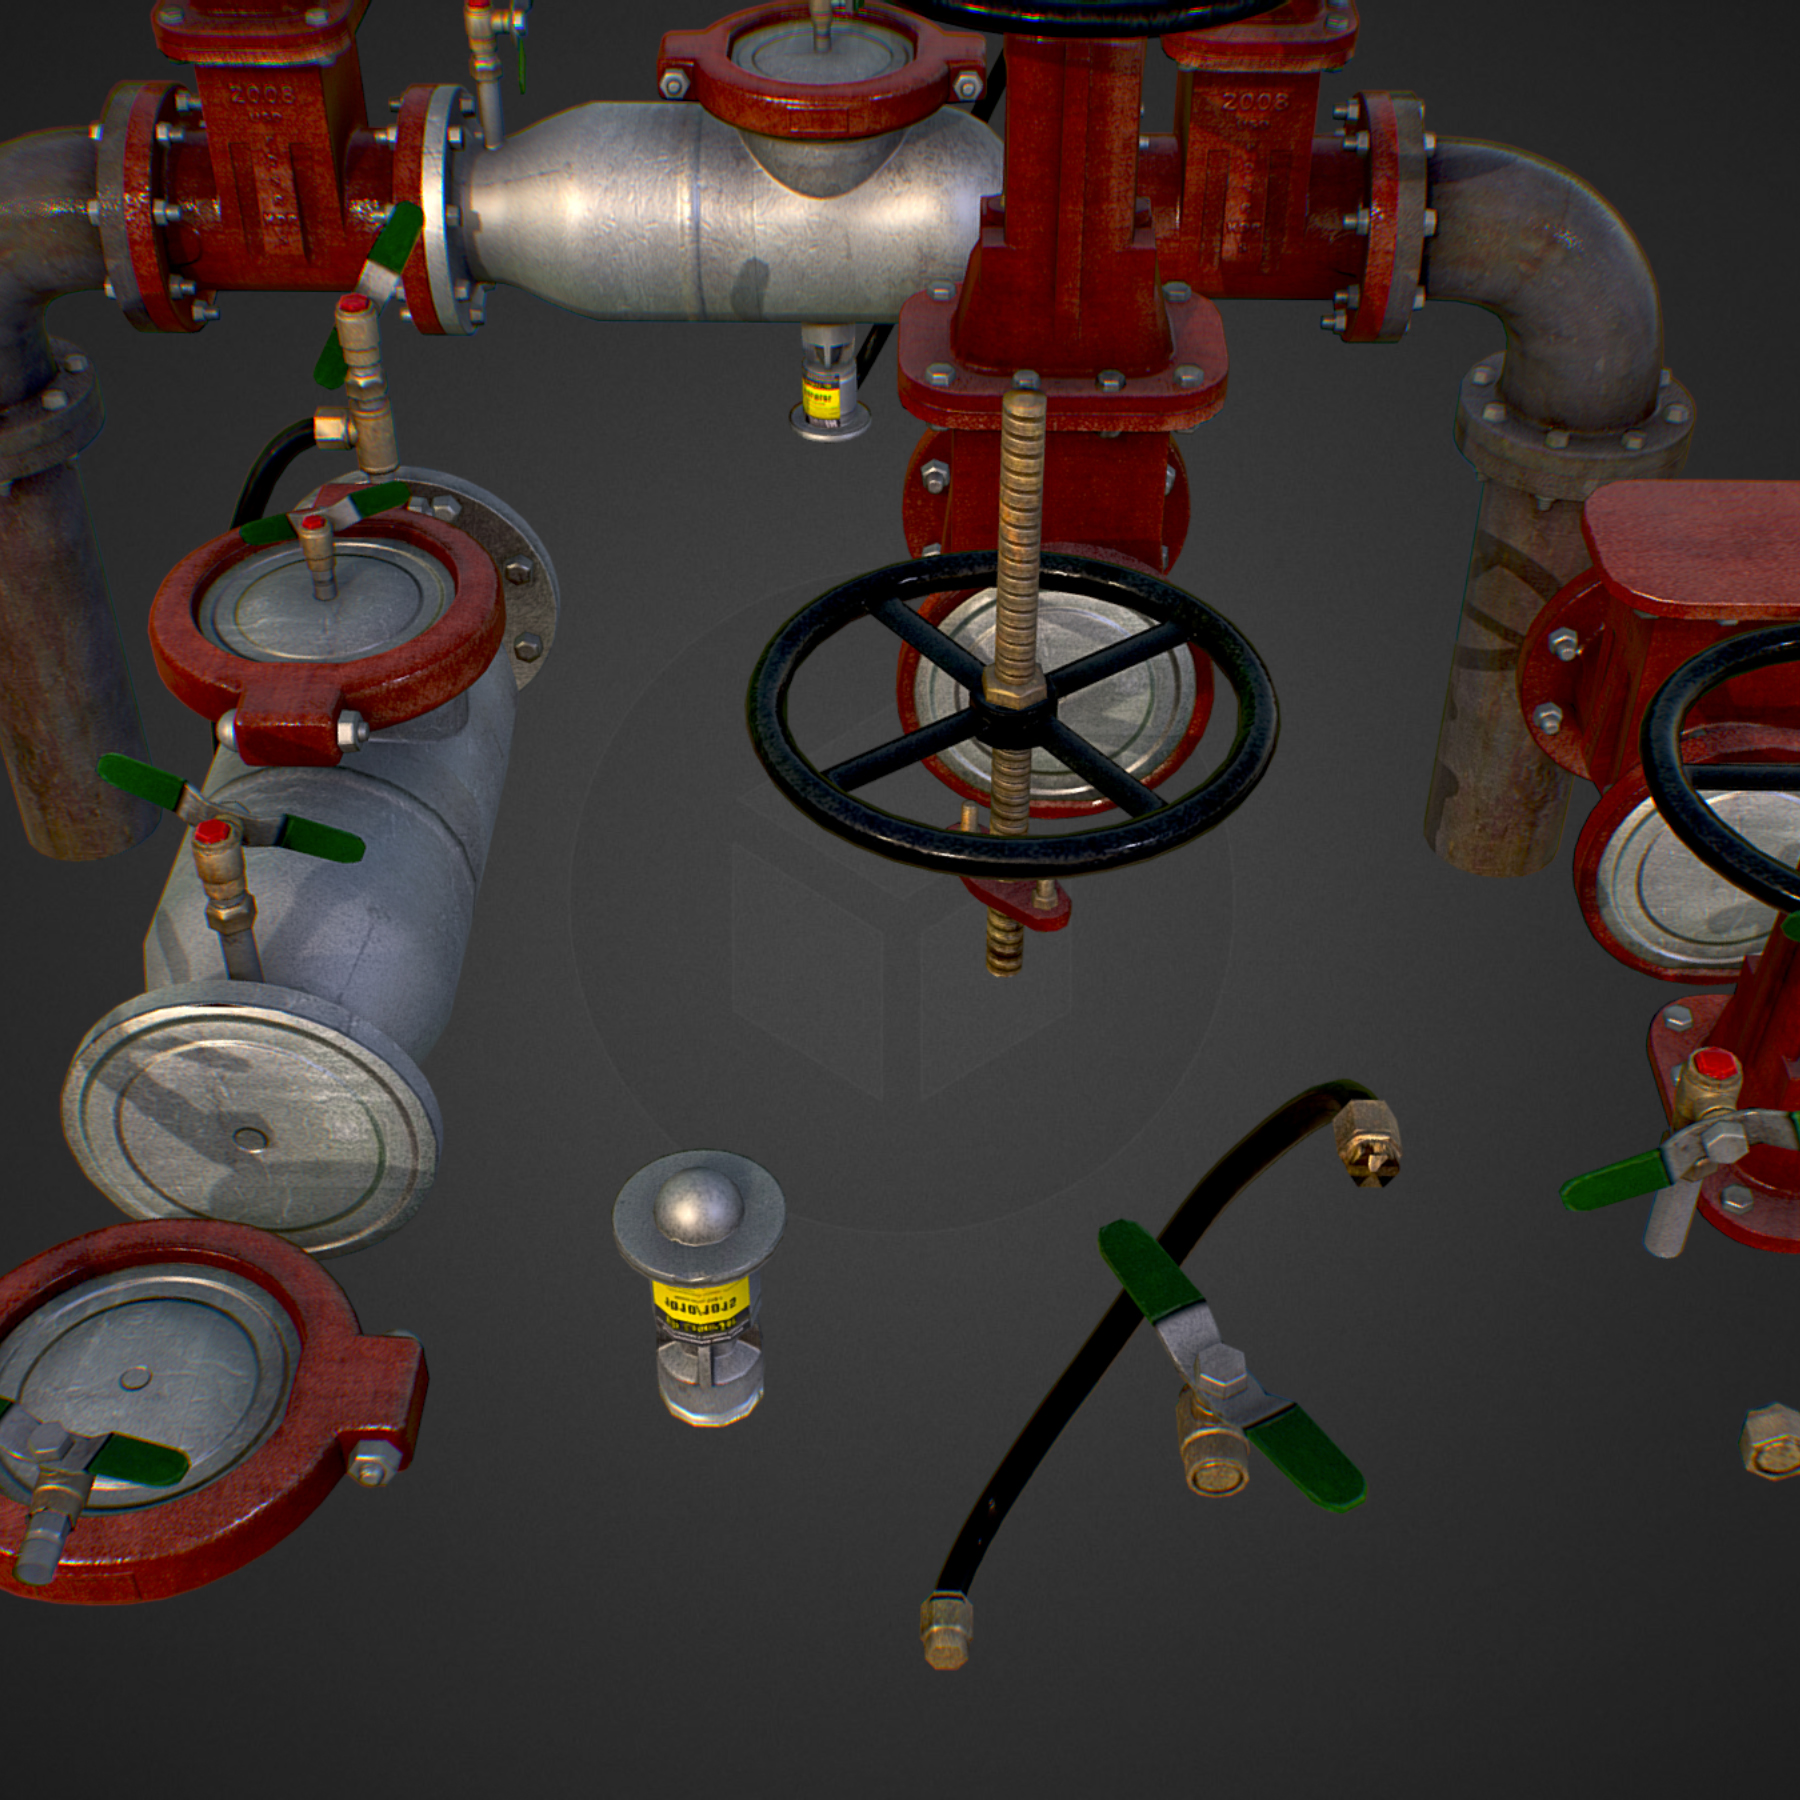 low poly game backflow water pipe constructor 3d model max  fbx ma mb tga targa icb vda vst pix obj 272471